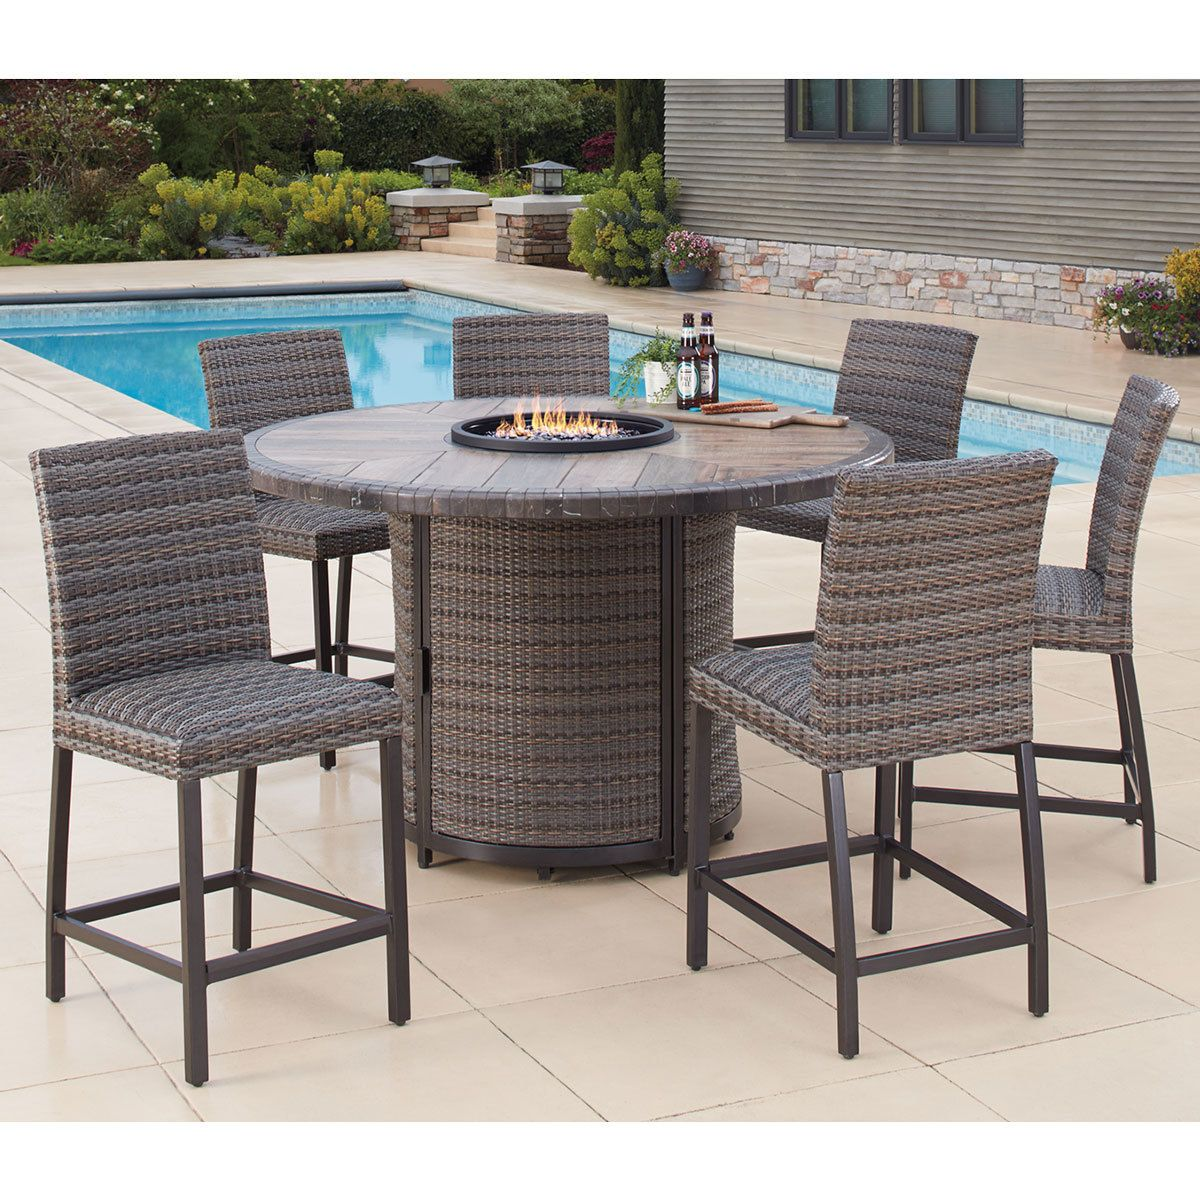 Agio Eastport 7 Piece Bar Height Fire Chat Set + Cover